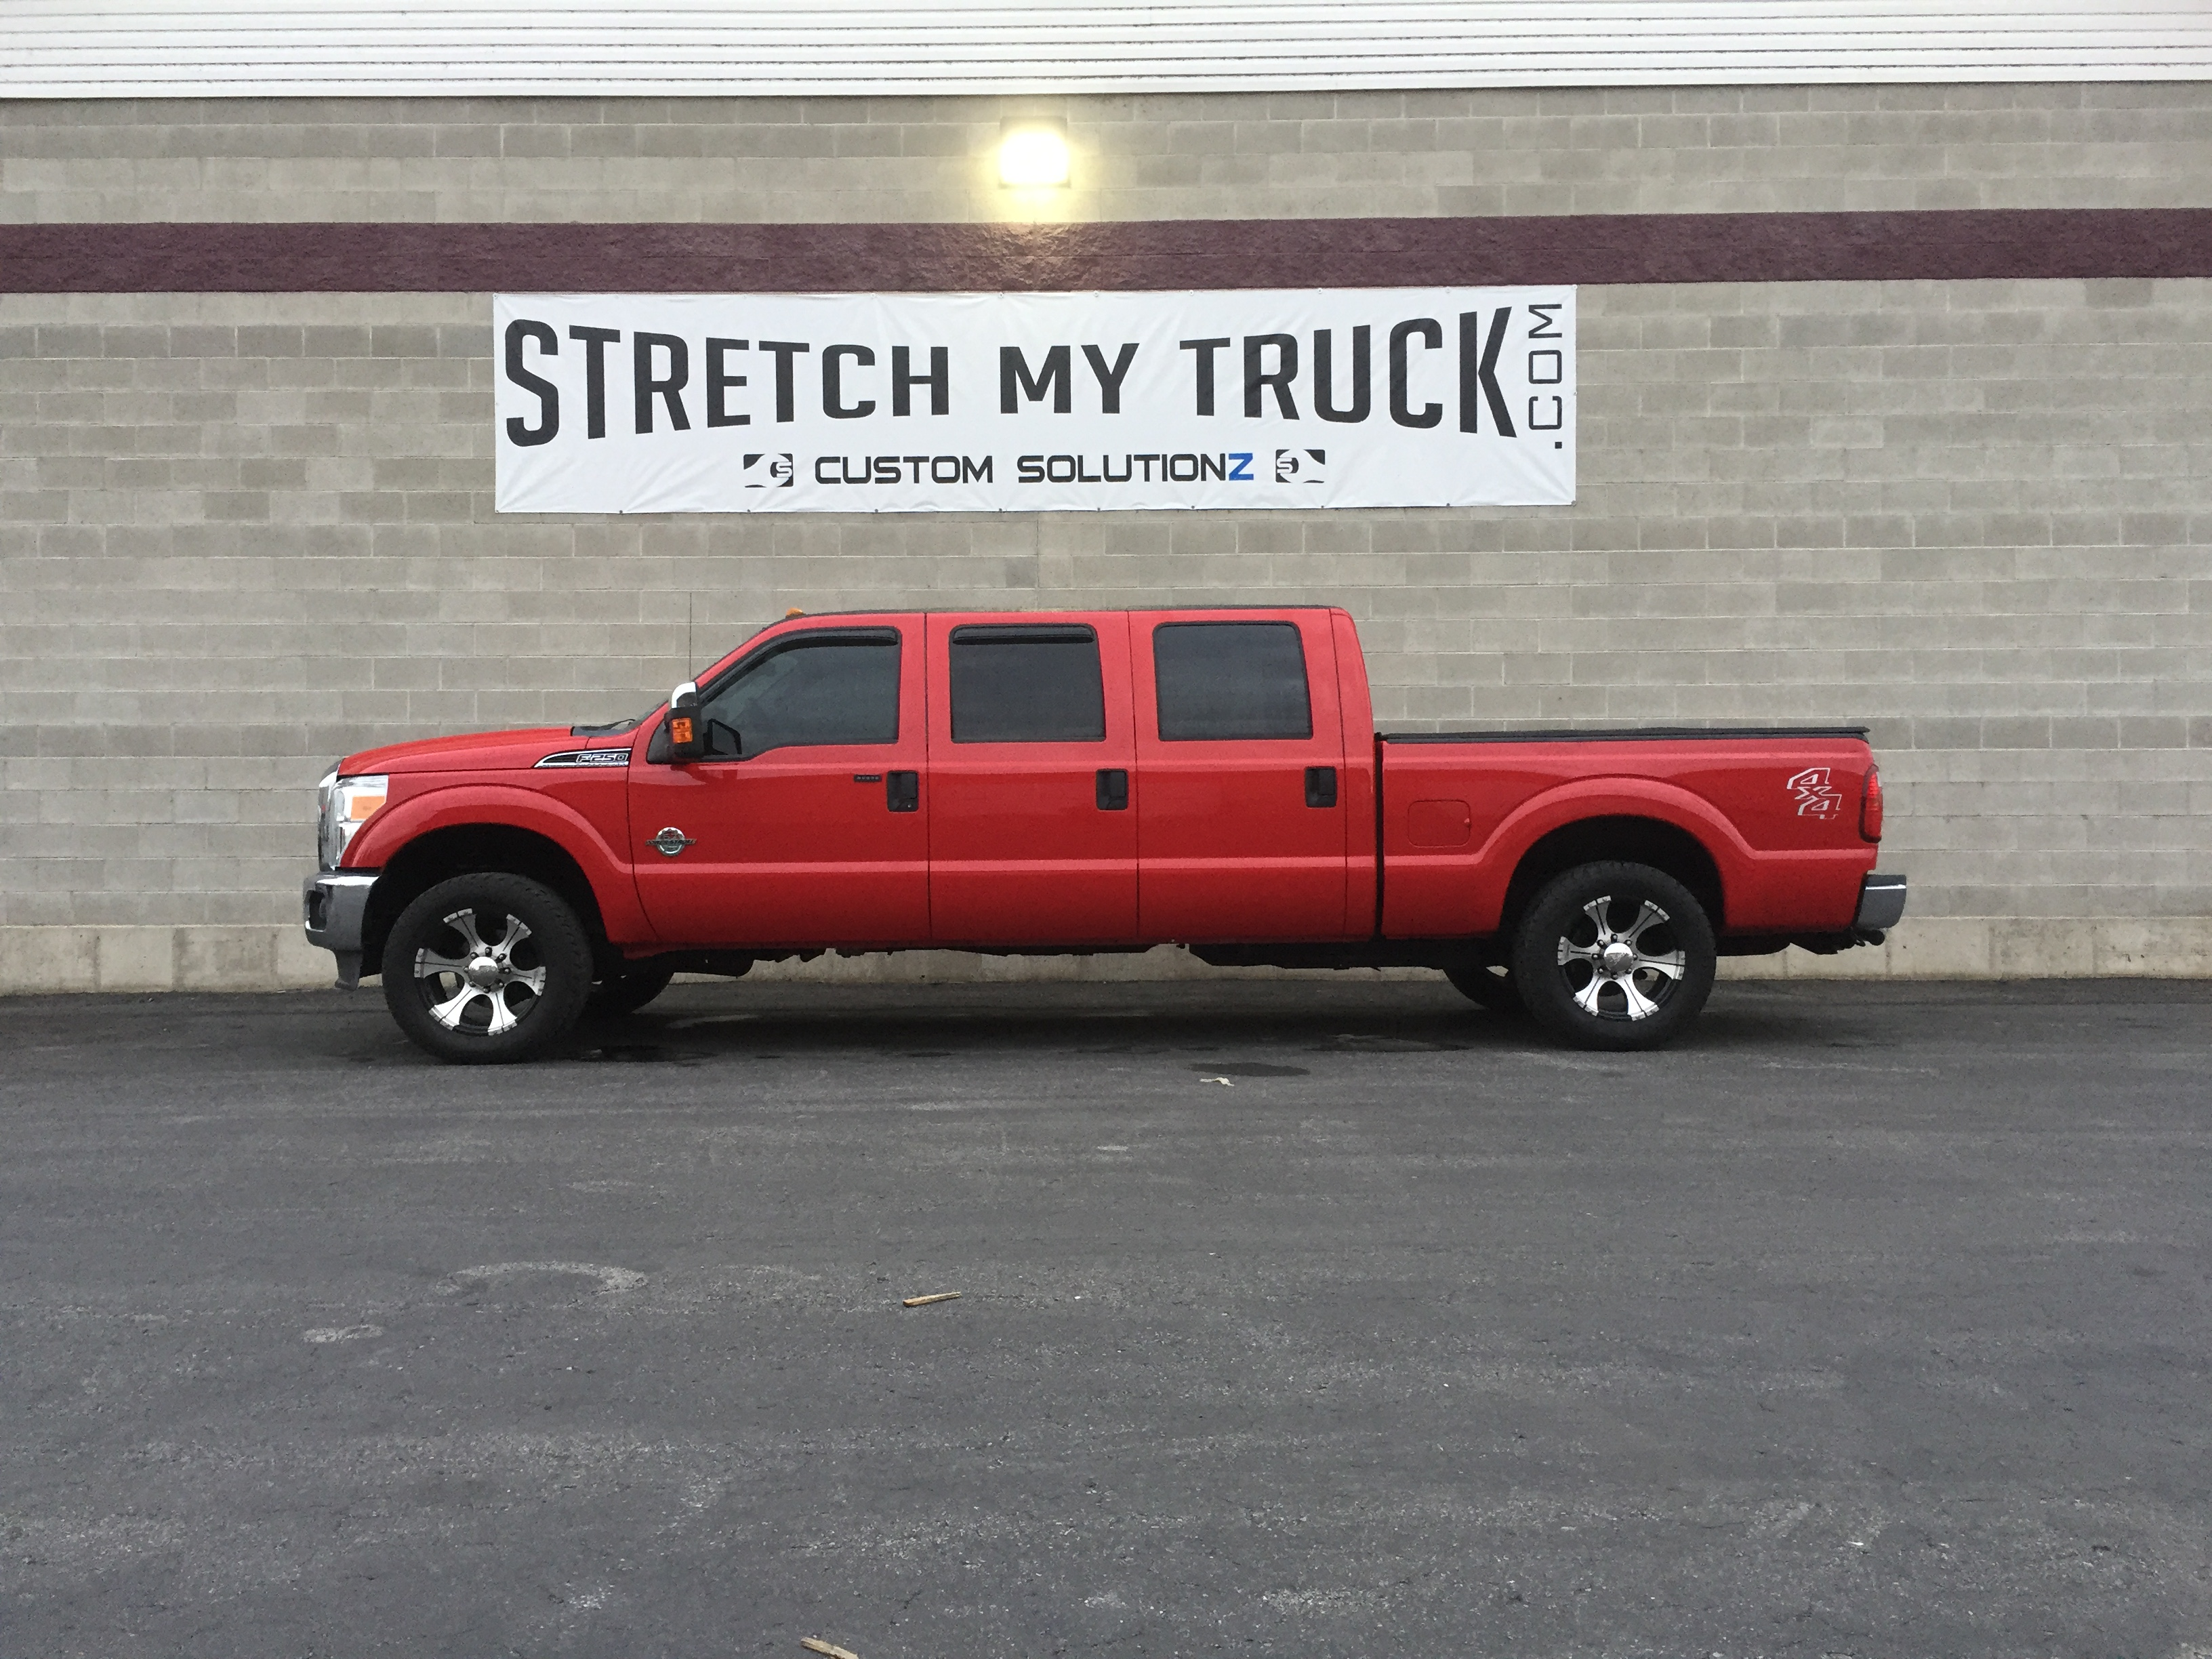 Six Door Conversions Stretch My Truck